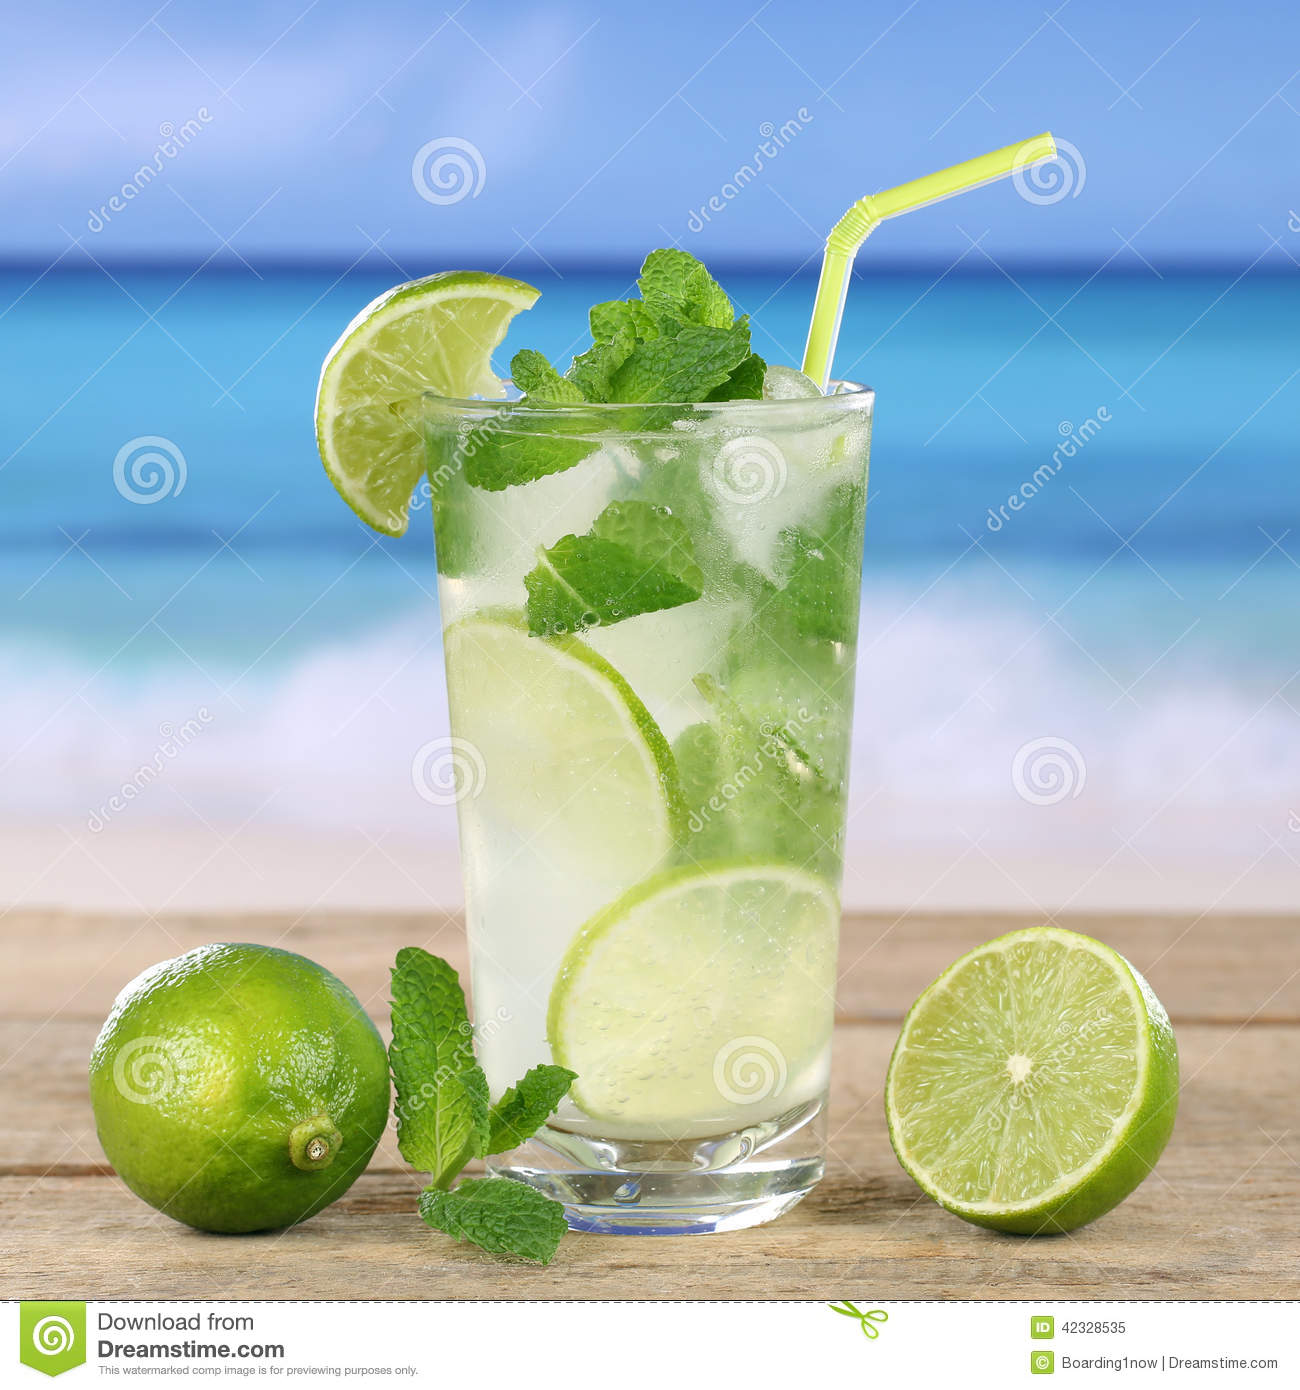 Mojito Or Caipirinha Cocktail Drink On The Beach Stock Photo - Image ...